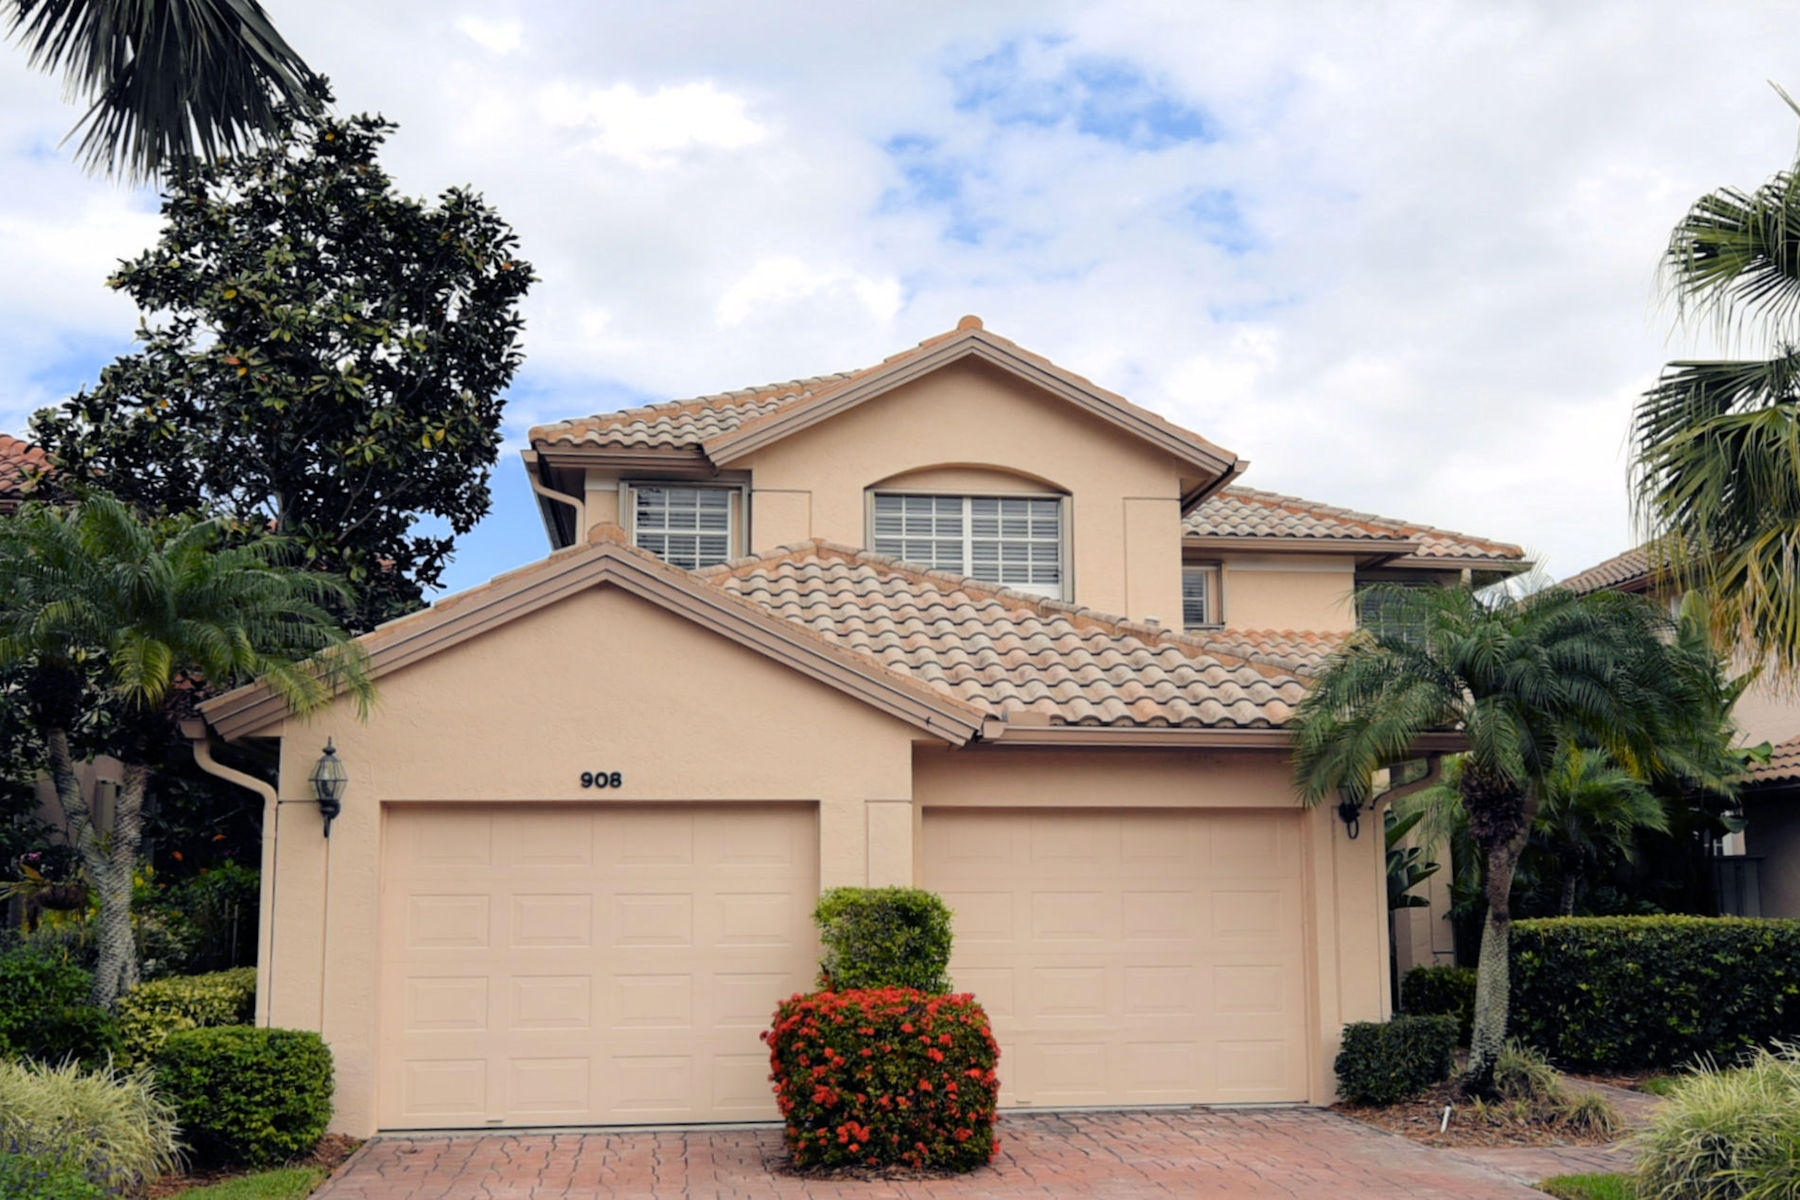 908 Augusta Pointe Drive, Palm Beach Gardens, Florida 33418, 3 Bedrooms Bedrooms, ,3 BathroomsBathrooms,A,Single family,Augusta Pointe,RX-10515508